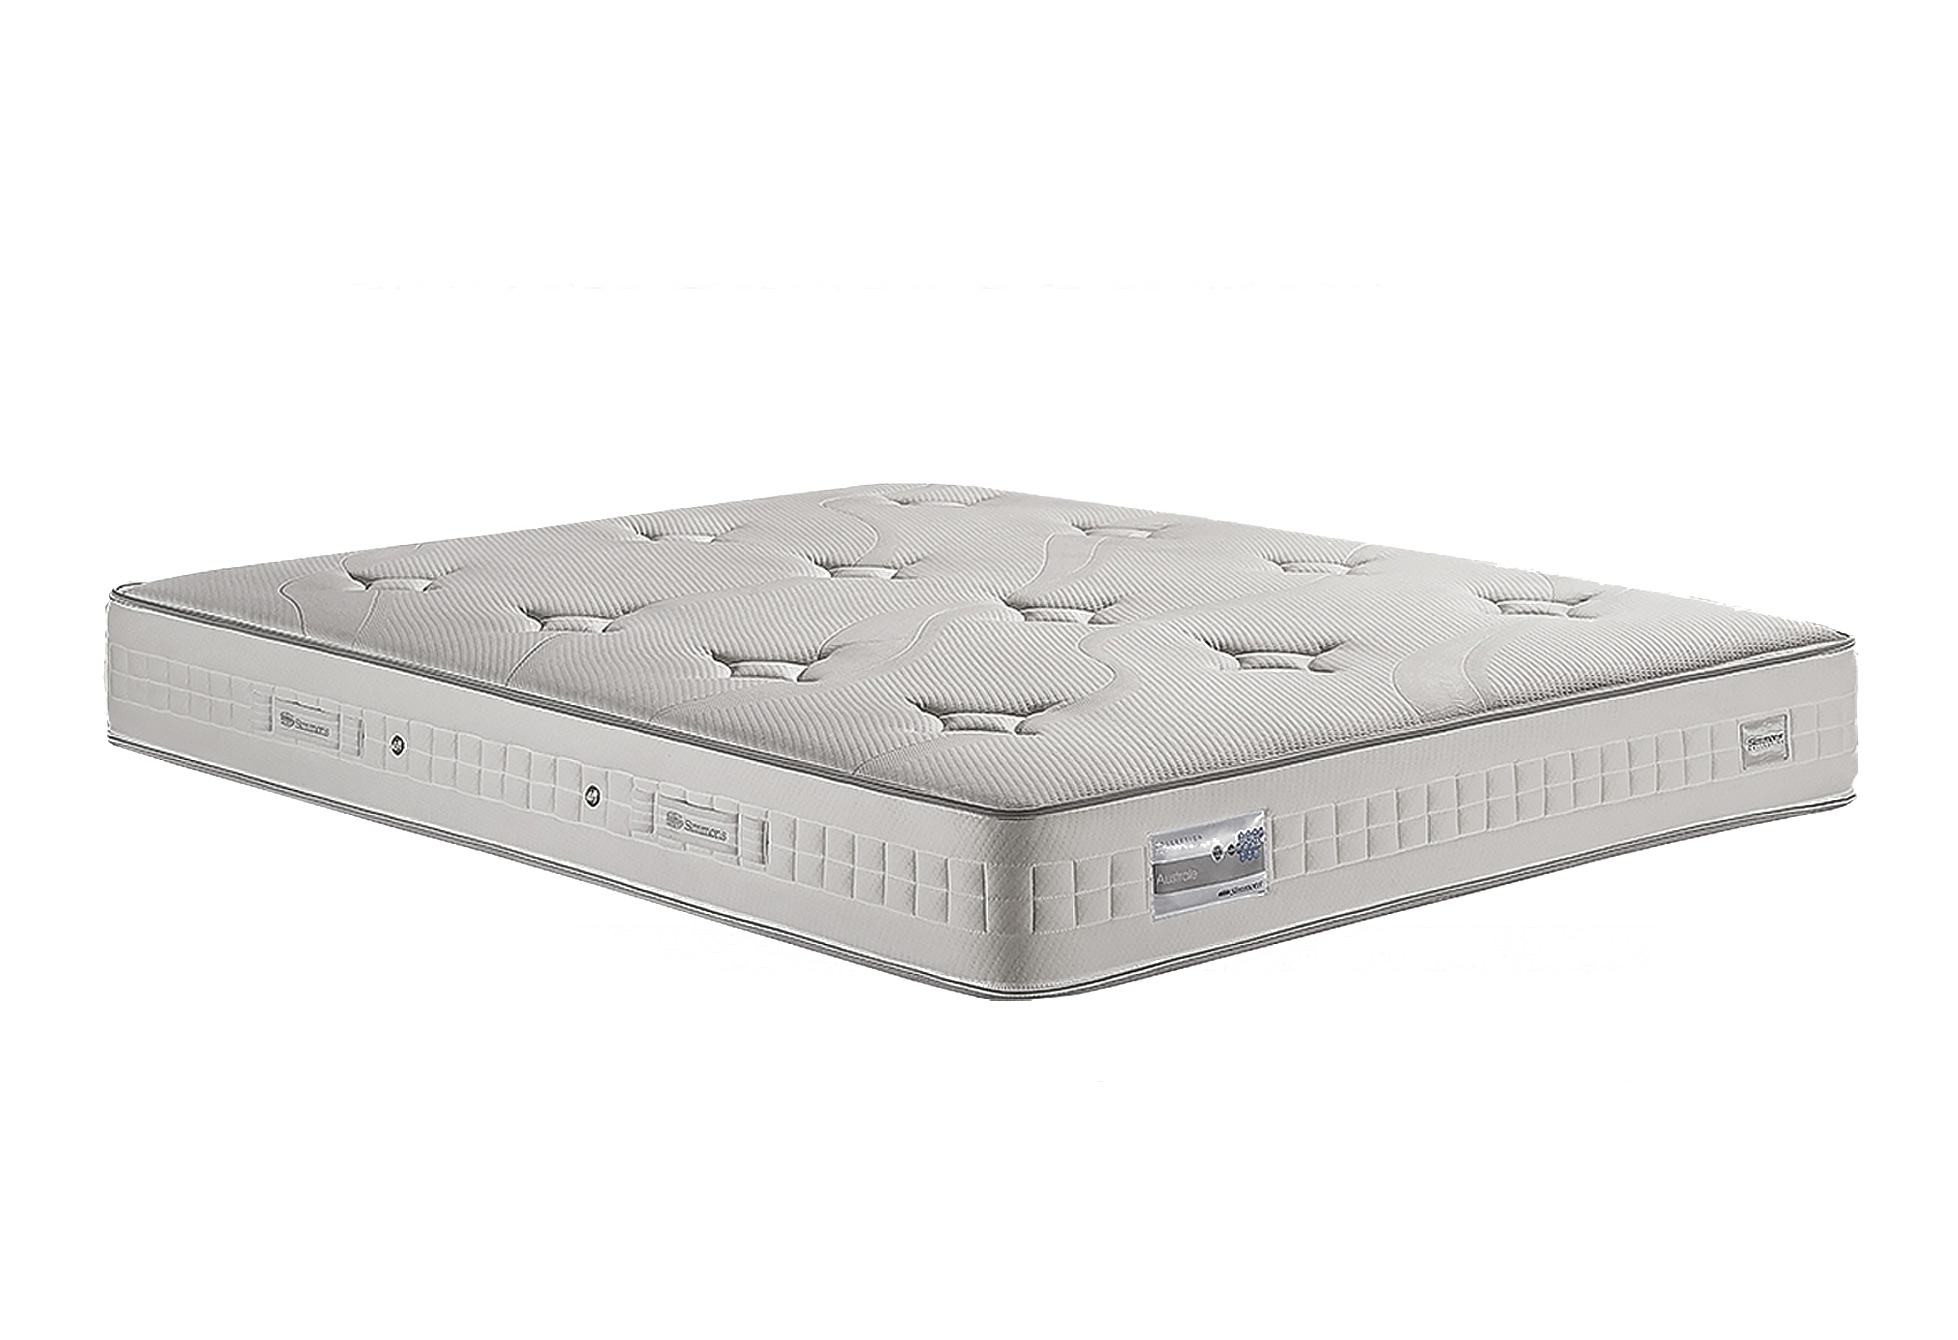 Matelas Ressorts Simmons SPECIAL DOS SENSIBLE 160x200 (Queen Size) ...